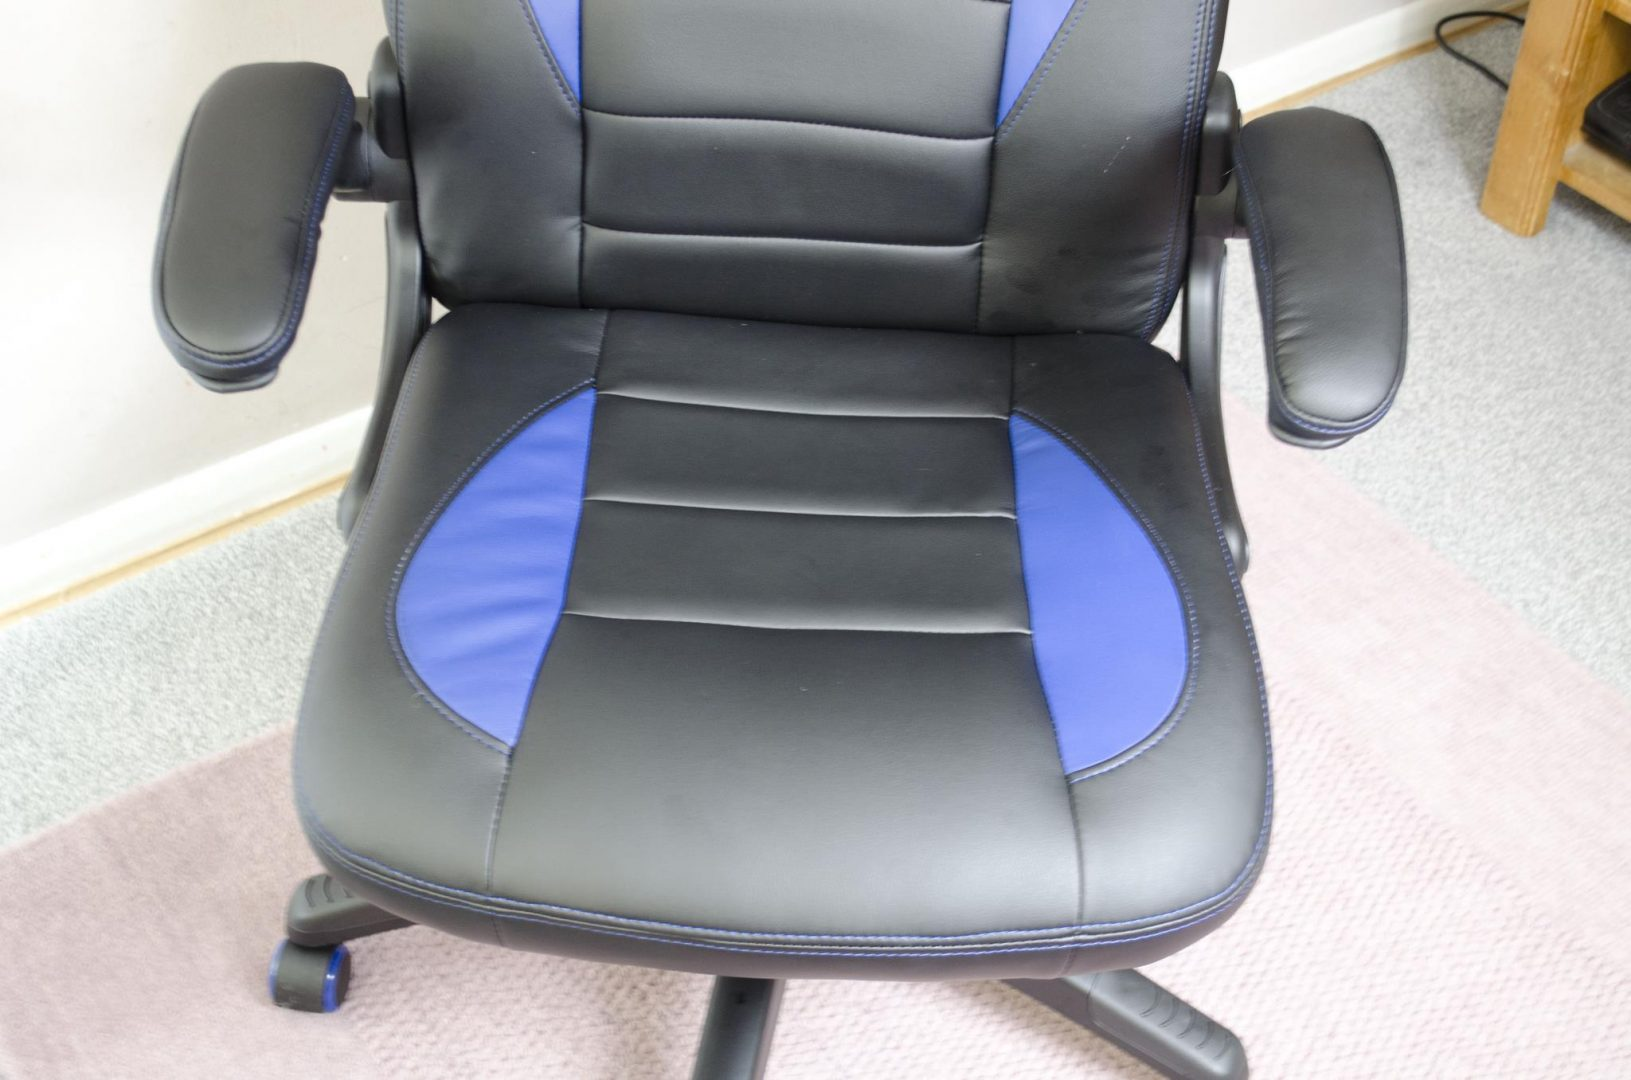 Nitro Concepts C80 motion gaming chair review_2